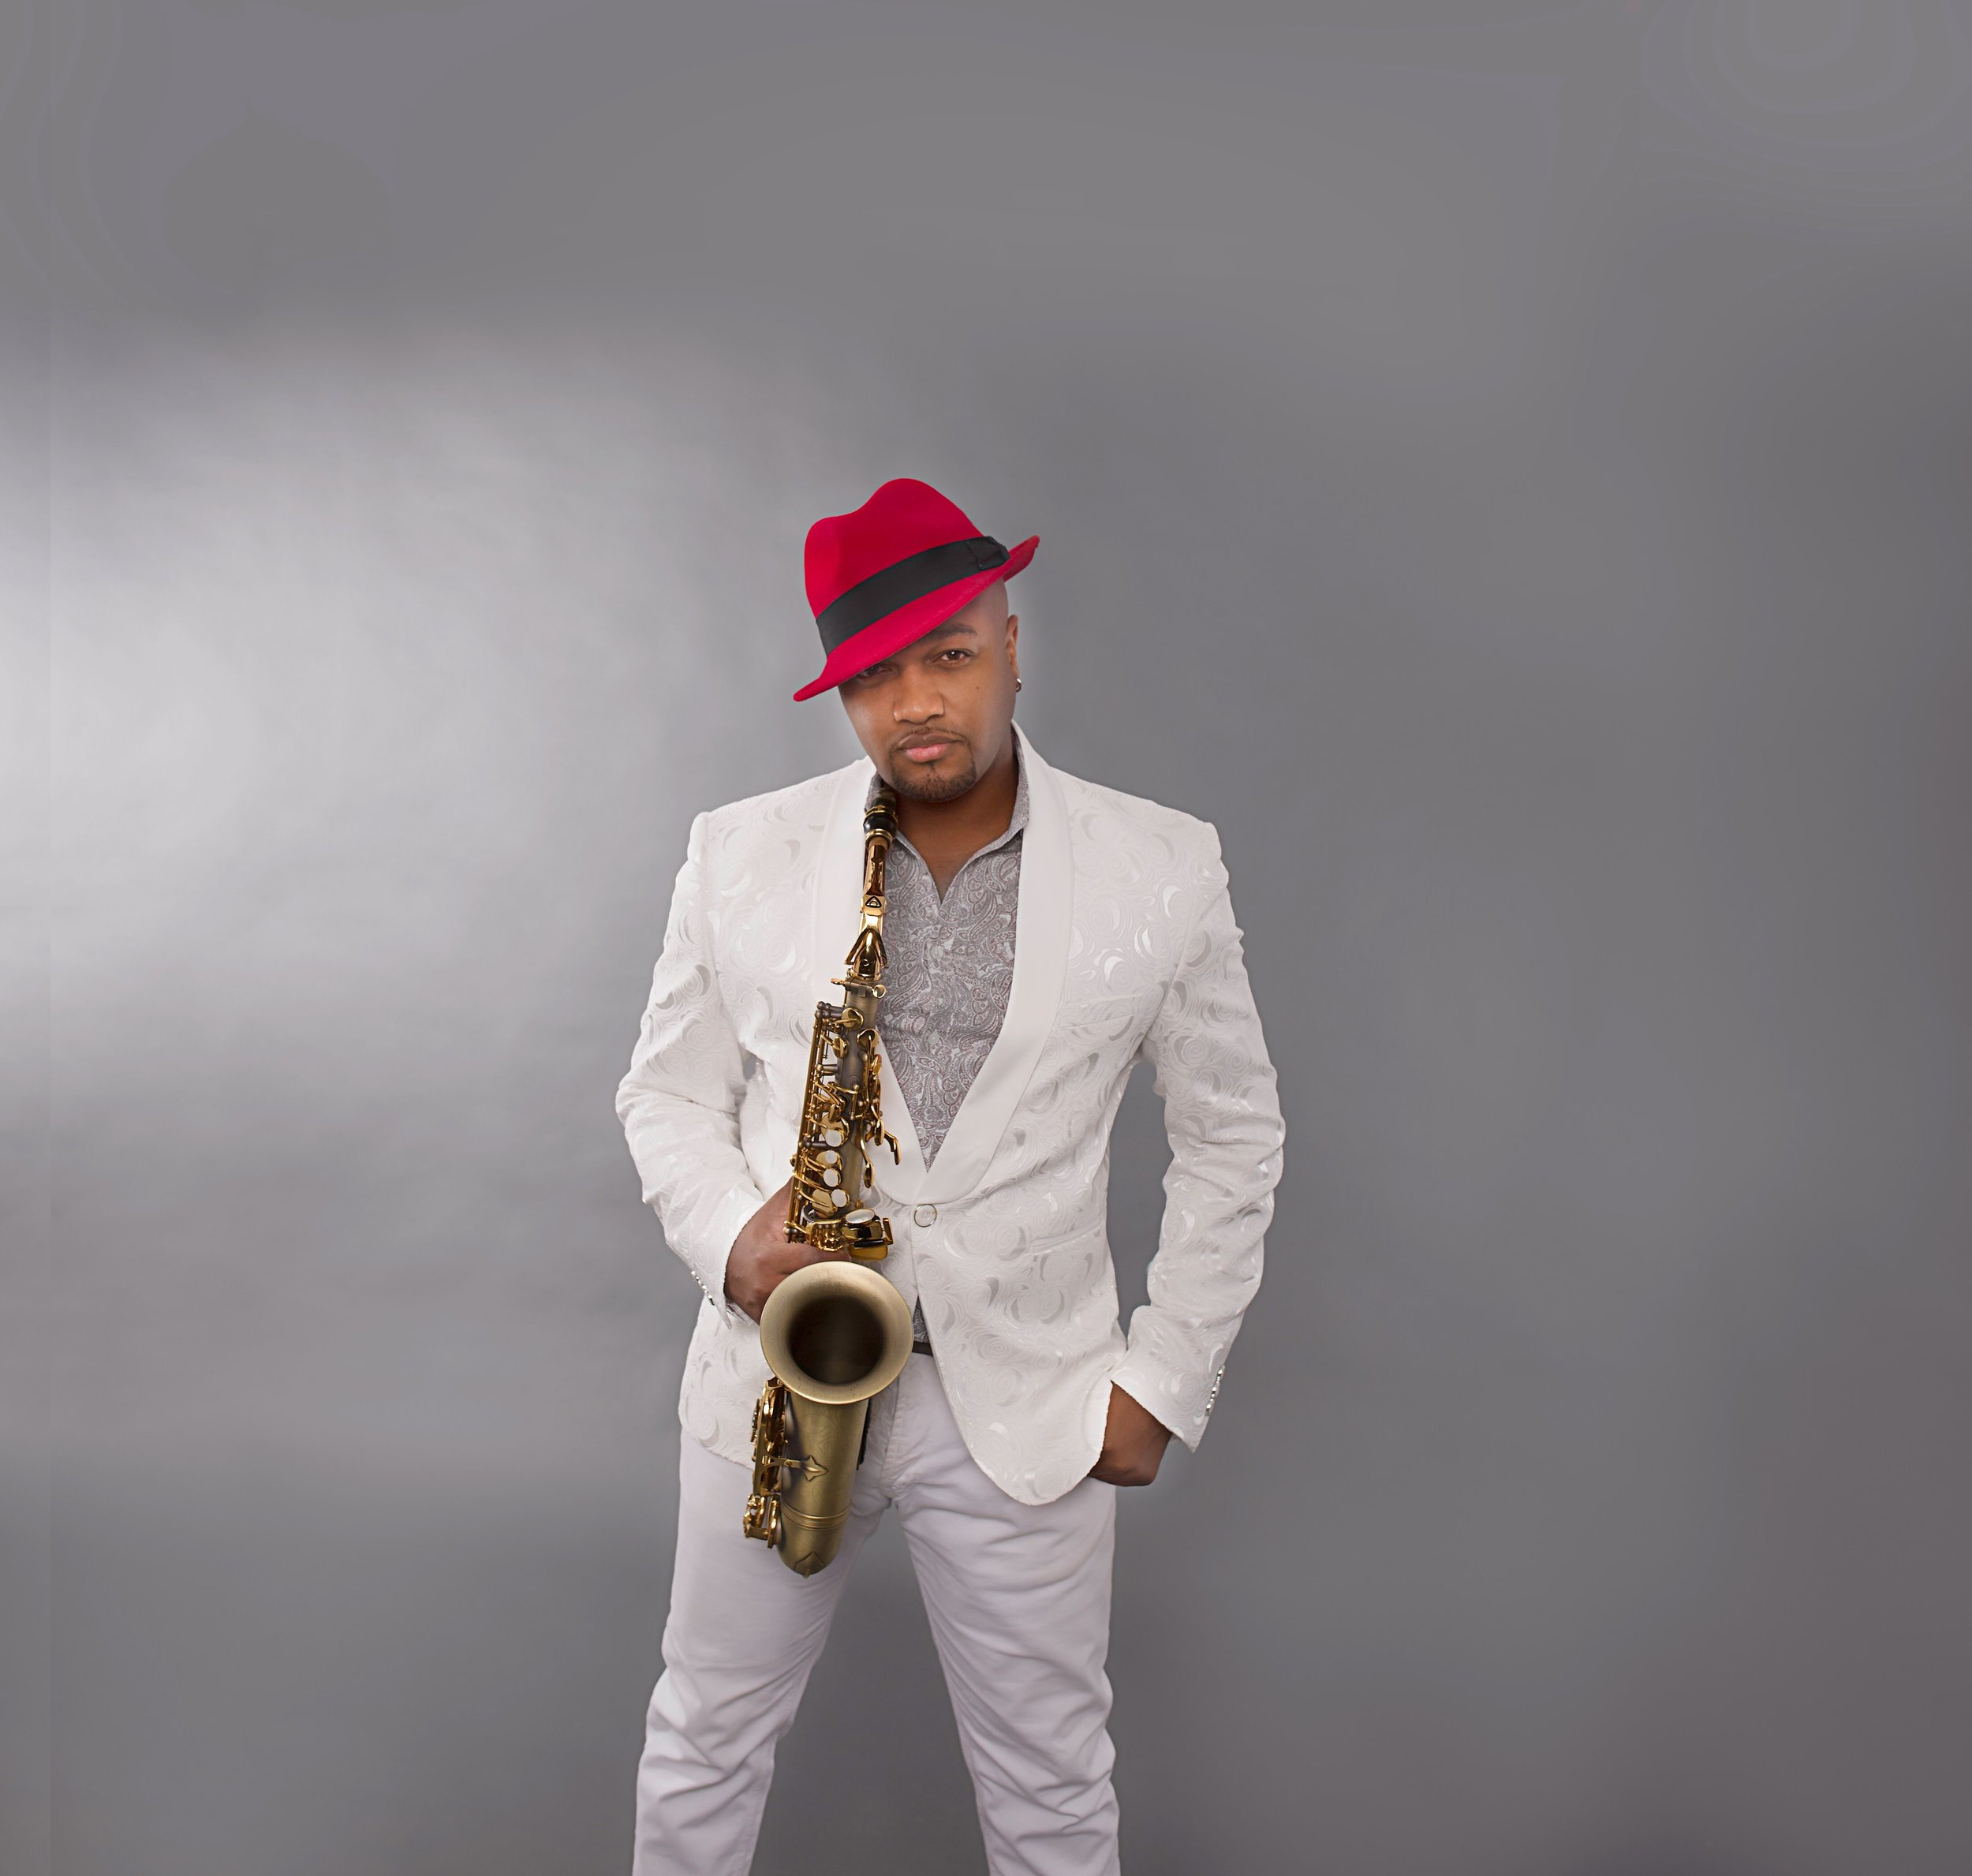 Saxophone player Marcus Anderson